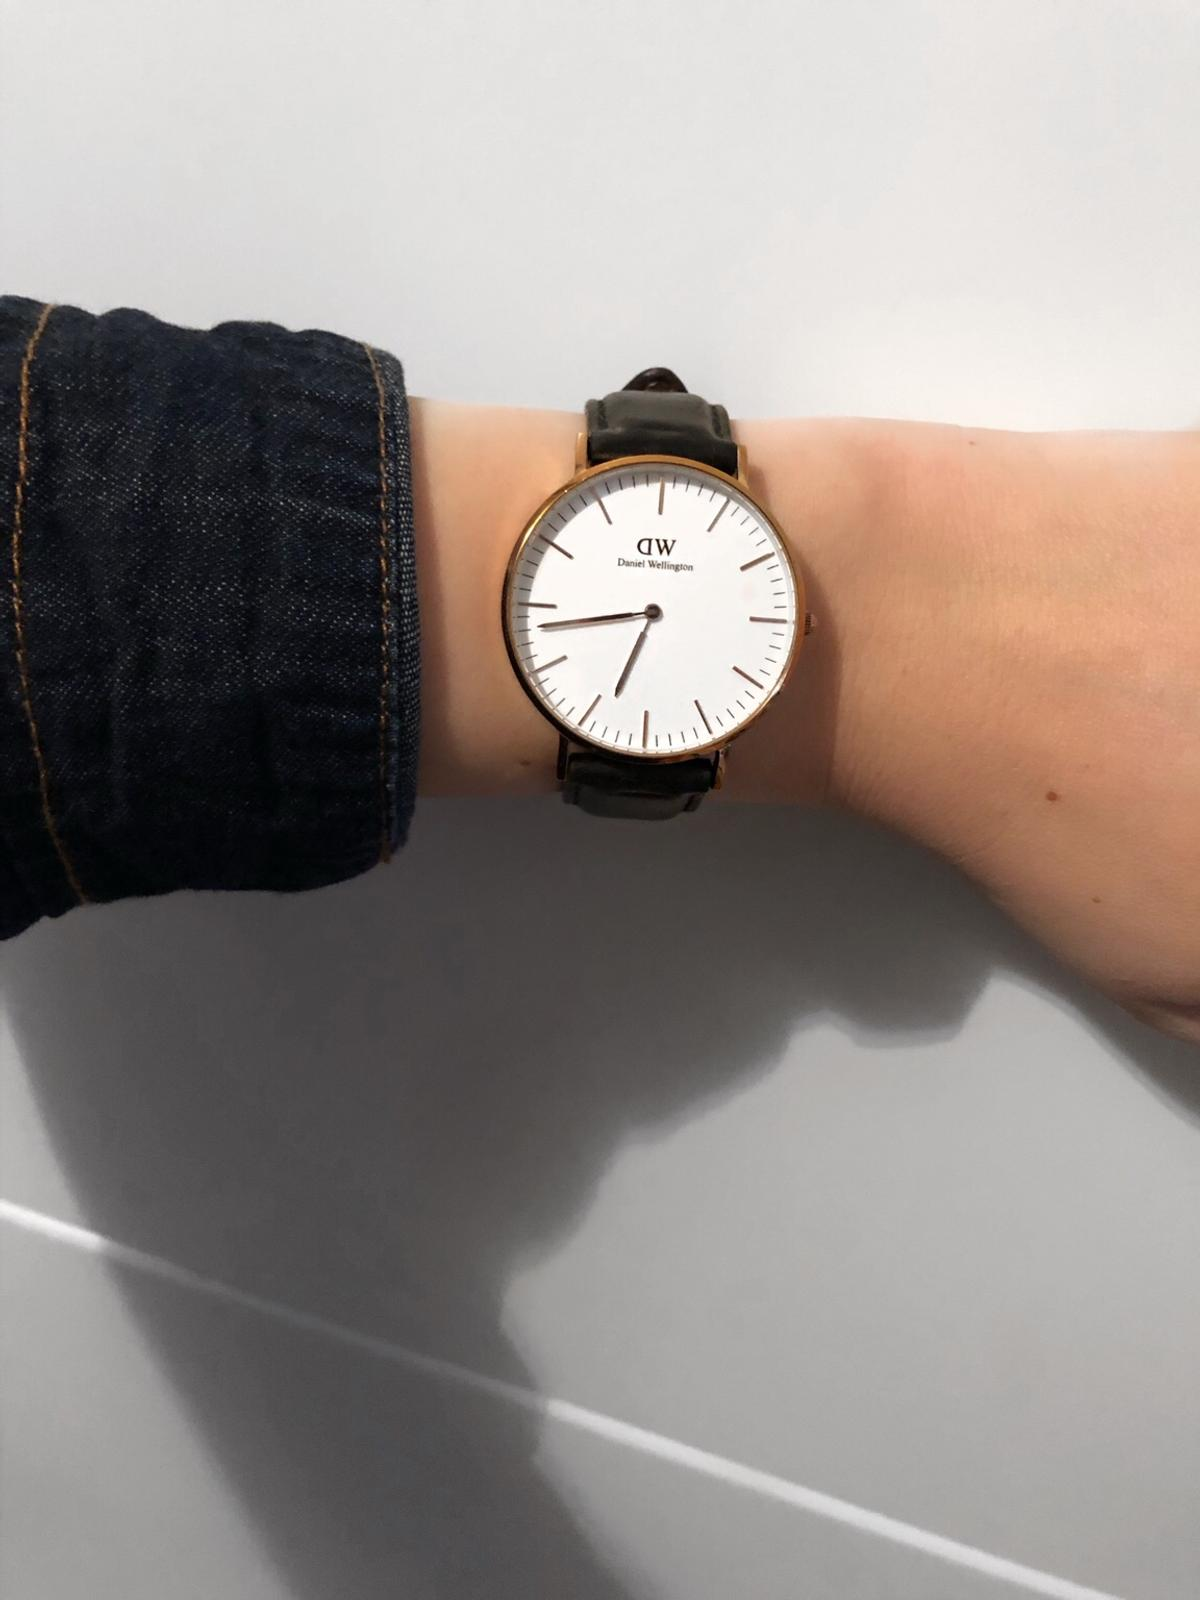 Daniel Wellington Uhr Schwarz Gold In 39418 Staßfurt For 70 00 For Sale Shpock